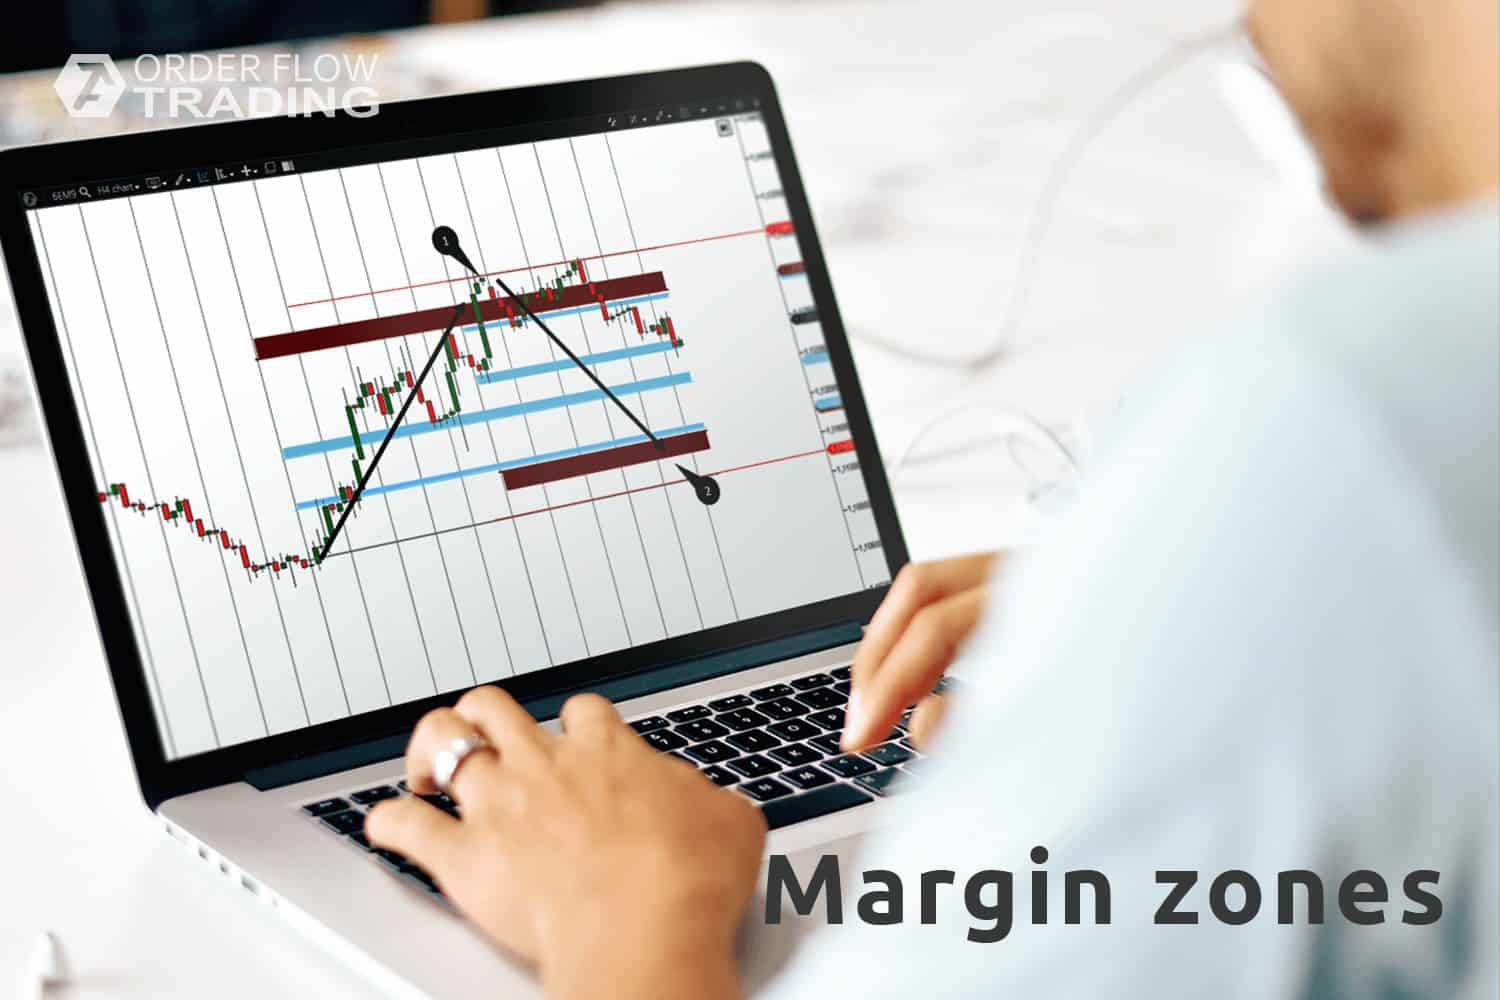 Market margin. A strategy example with an indicator.